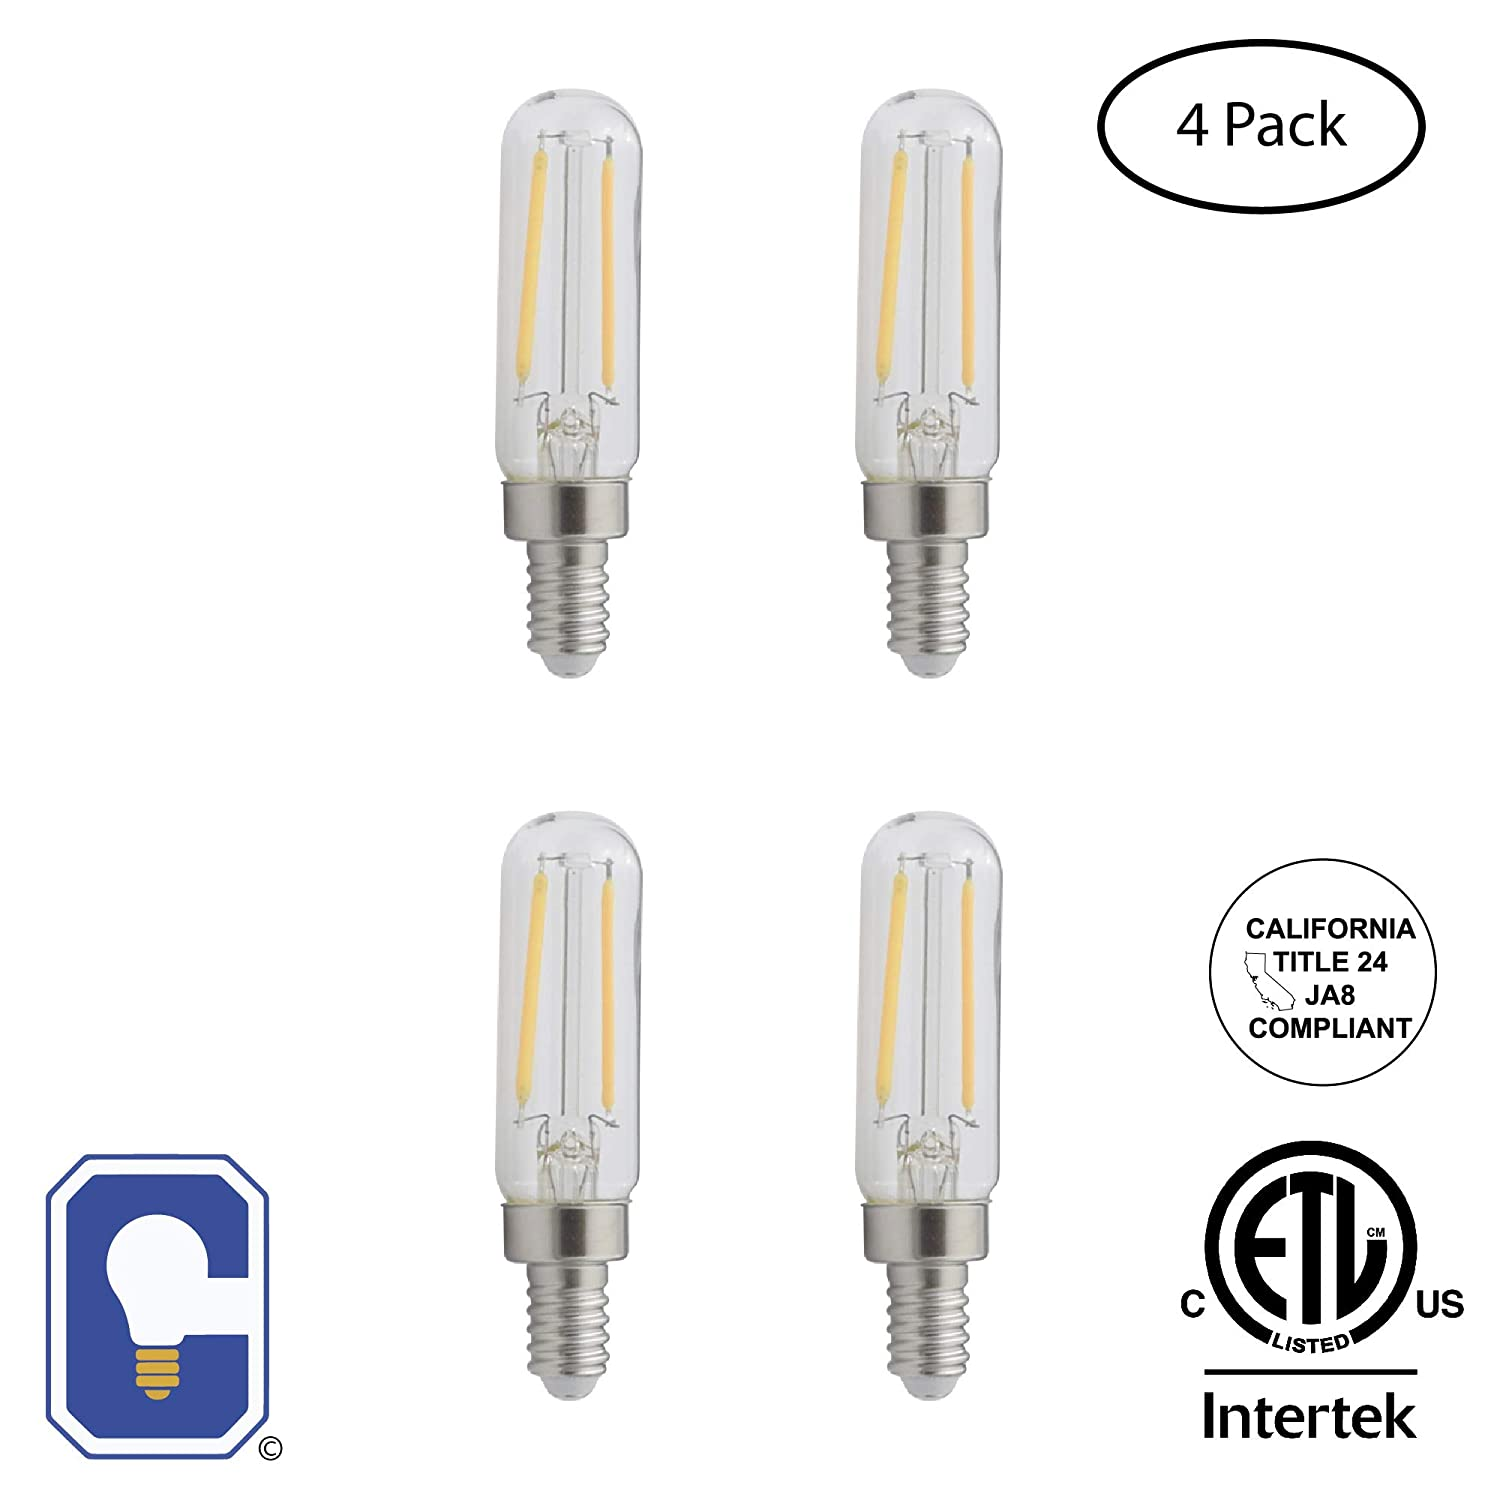 Dimmable Candex LED Filament 2700K 4 Pack JA8 E12 Base T6 Clear 2W 120V